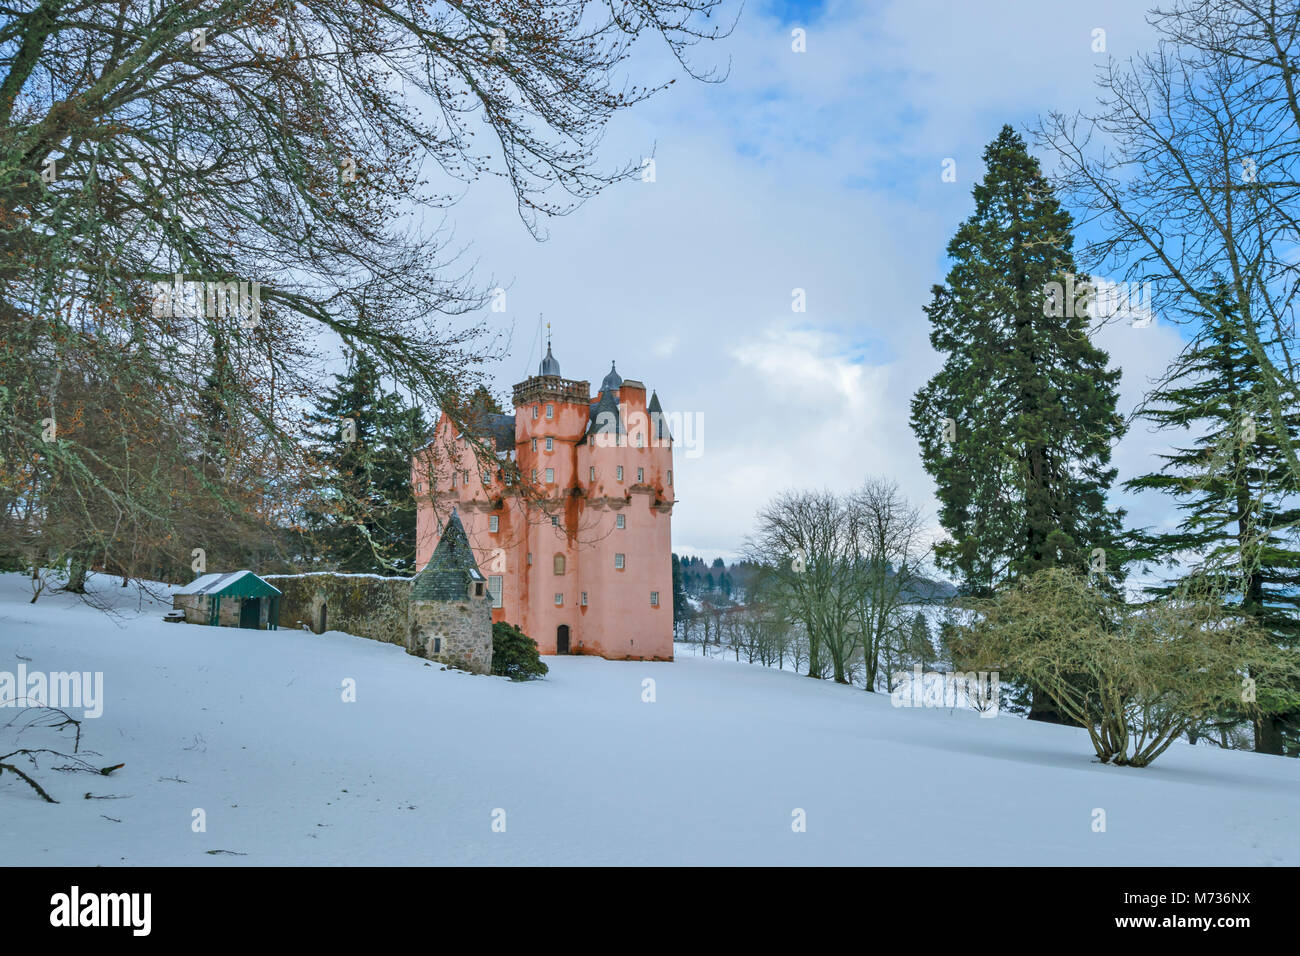 CRAIGIEVAR CASTLE ABERDEENSHIRE SCOTLAND SURROUNDED BY WINTER SNOW WITH BEECH AND EVERGREEN PINE TREES - Stock Image